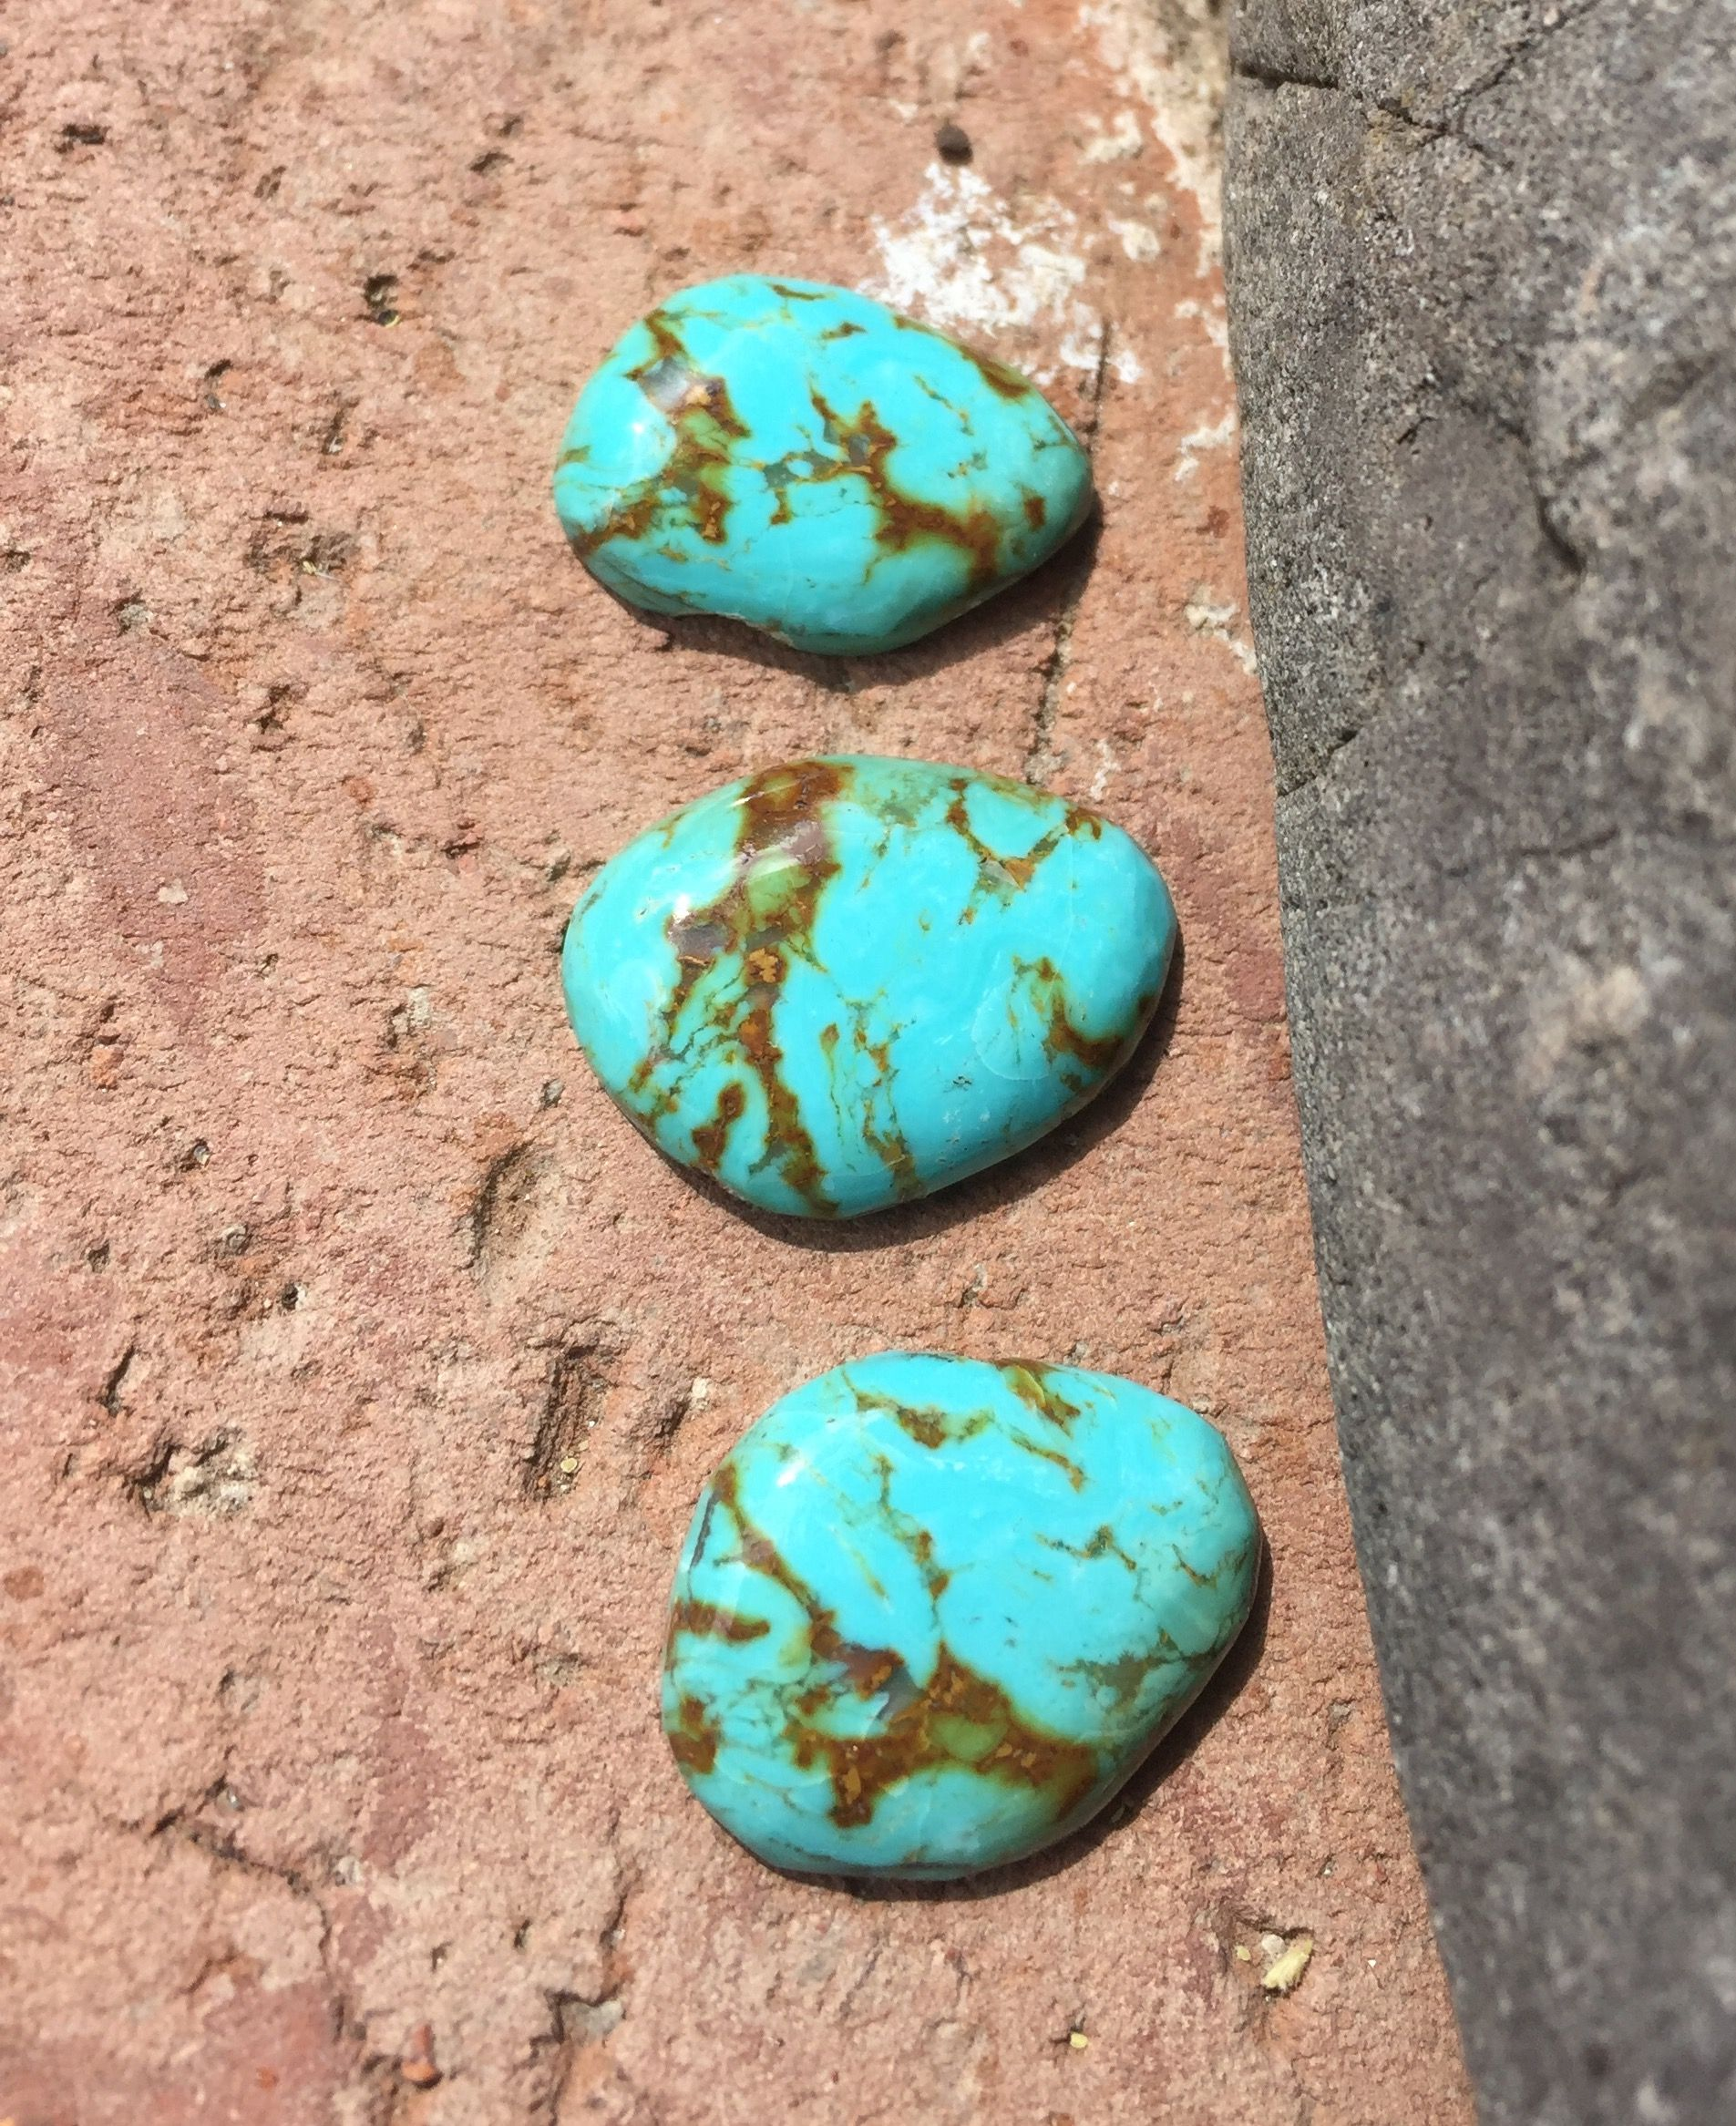 Natural sunlight on fresh Turquoise cabs. Estate sale find, in guessing Carico Lake or Royston.